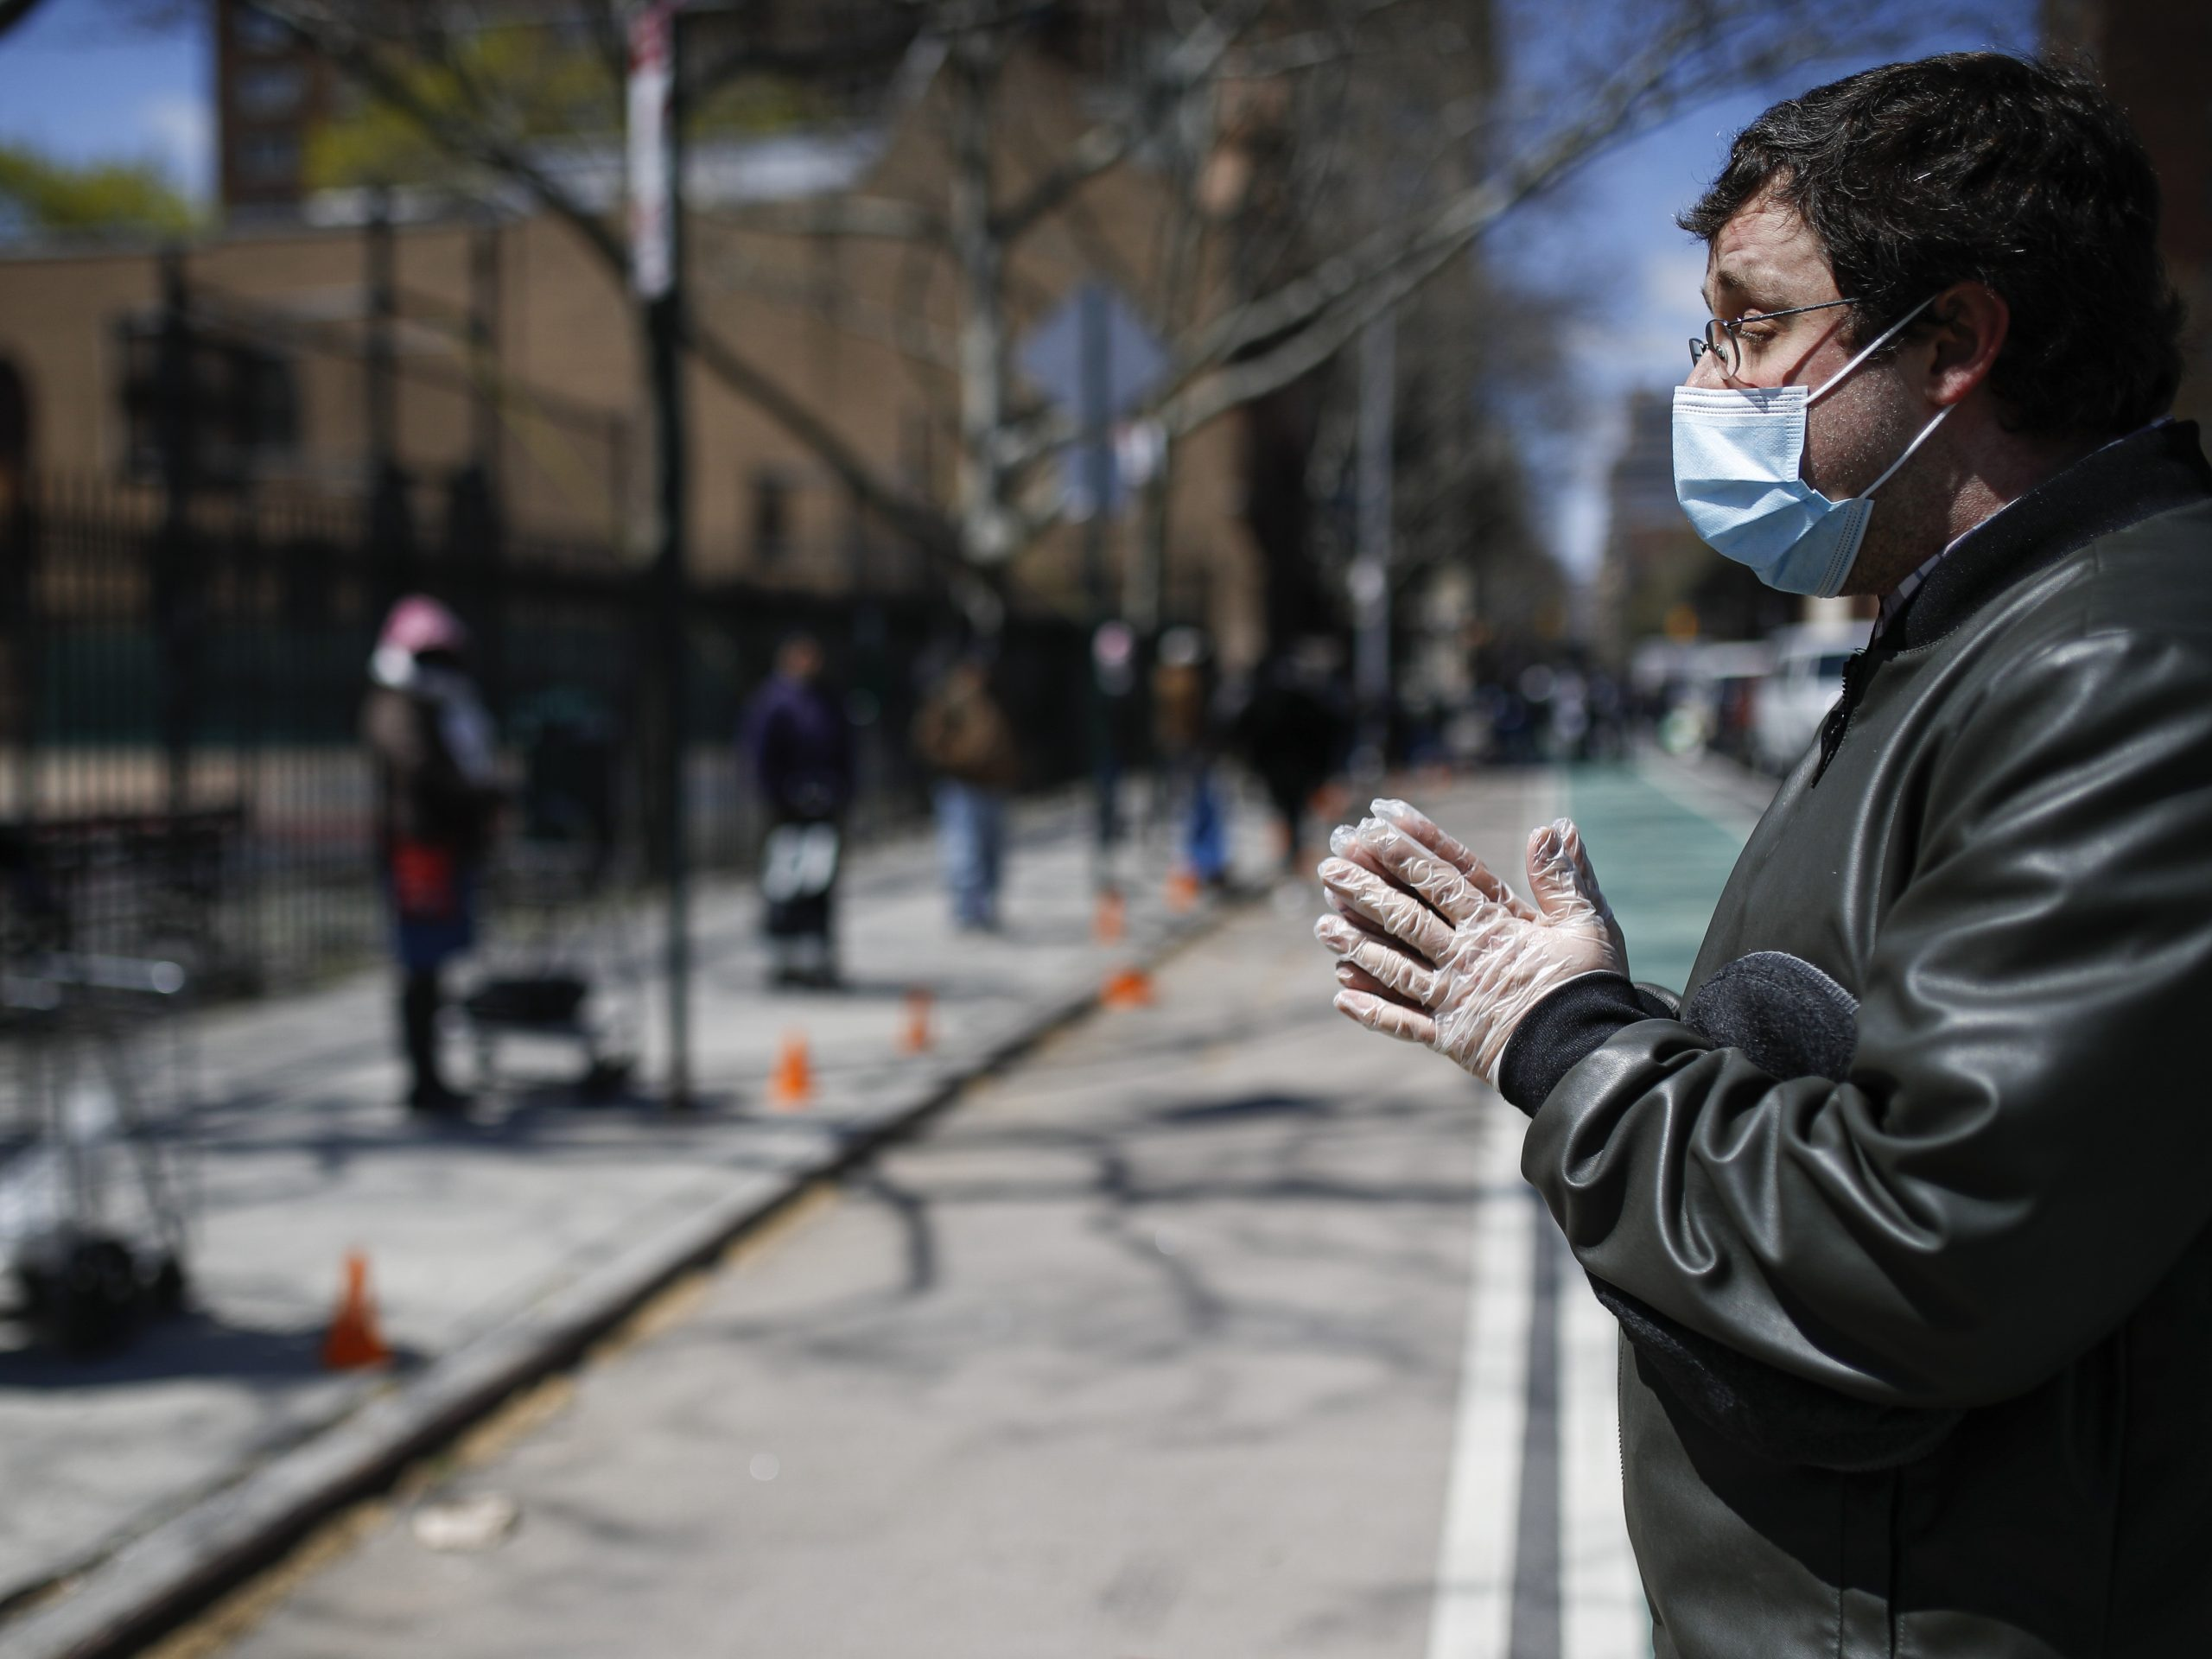 Christopher Love, general manager of the Covenant Mercy Mission, leads a prayer beside a line of visitors waiting for food donations at Manor Community Church on Saturday in New York. An additional 758 people died from the coronavirus over the past 24 hours, Gov. Andrew Cuomo said on Sunday.